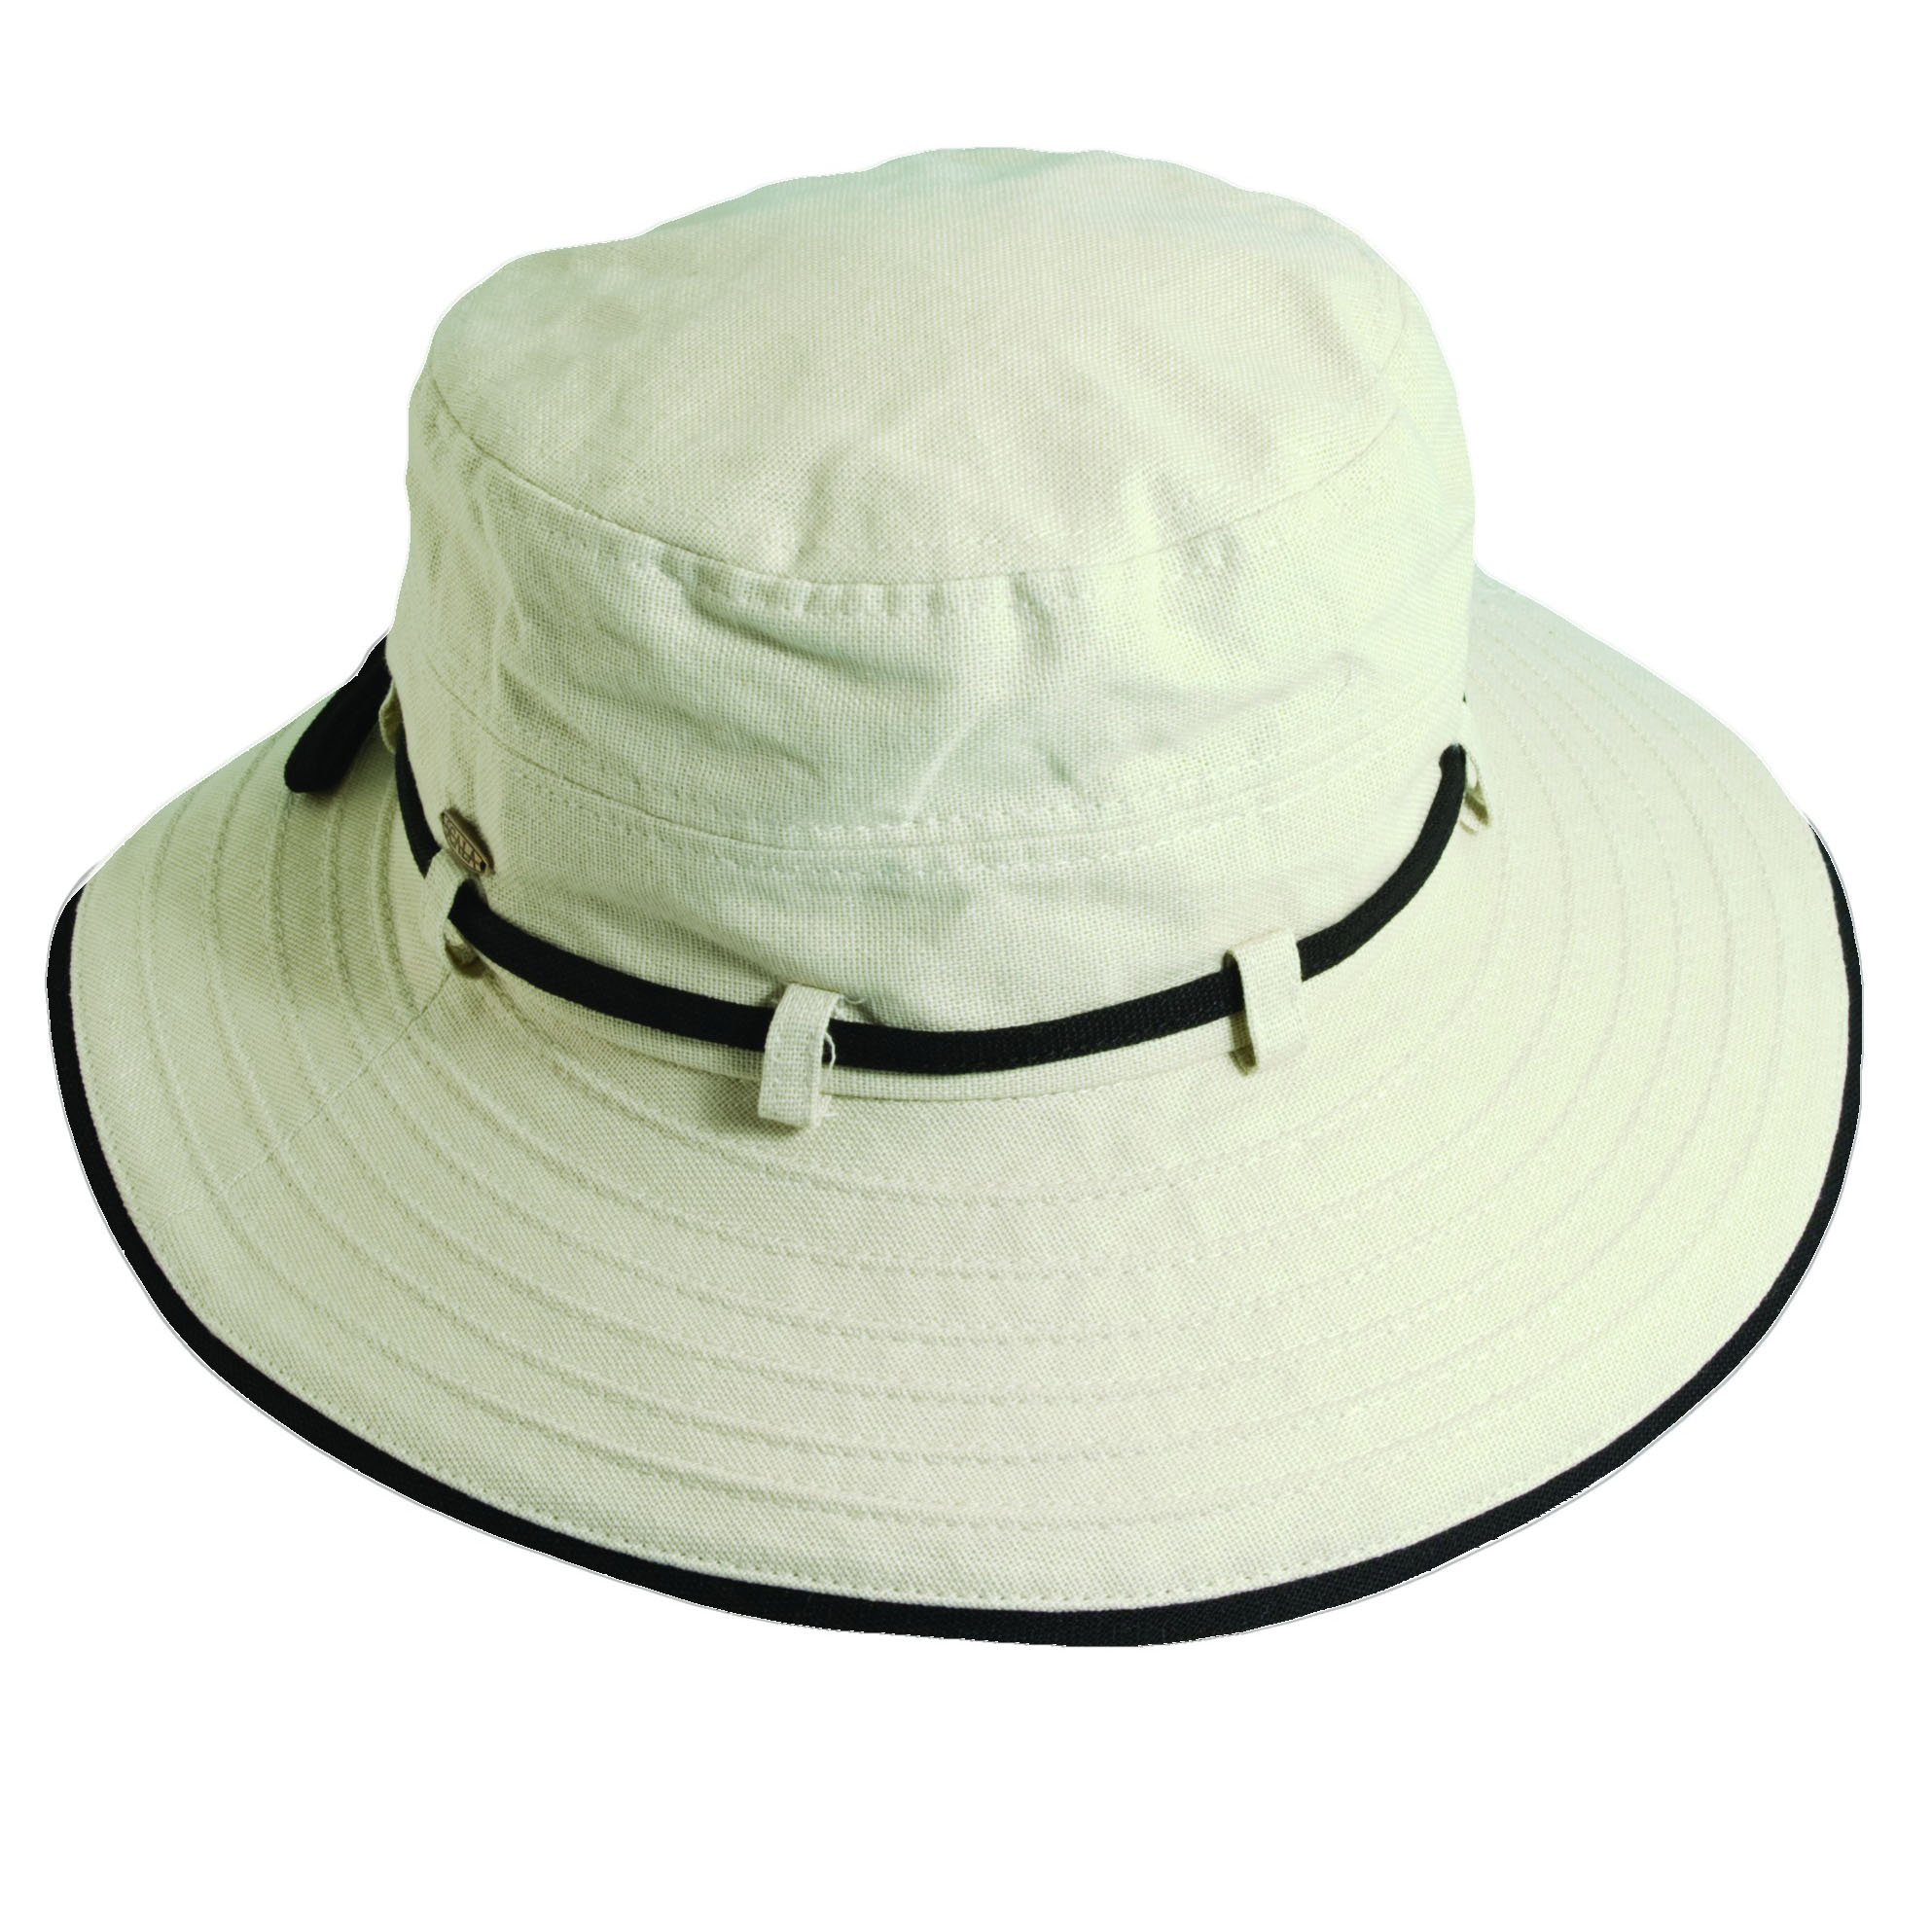 Enjoy the great outdoors while looking your best with Scala's Classic Cotton Sun Hat. Available in a wide variety of colors; there is a hat for all your summer activities from boating and bathing in the sun to luncheons in the garden.